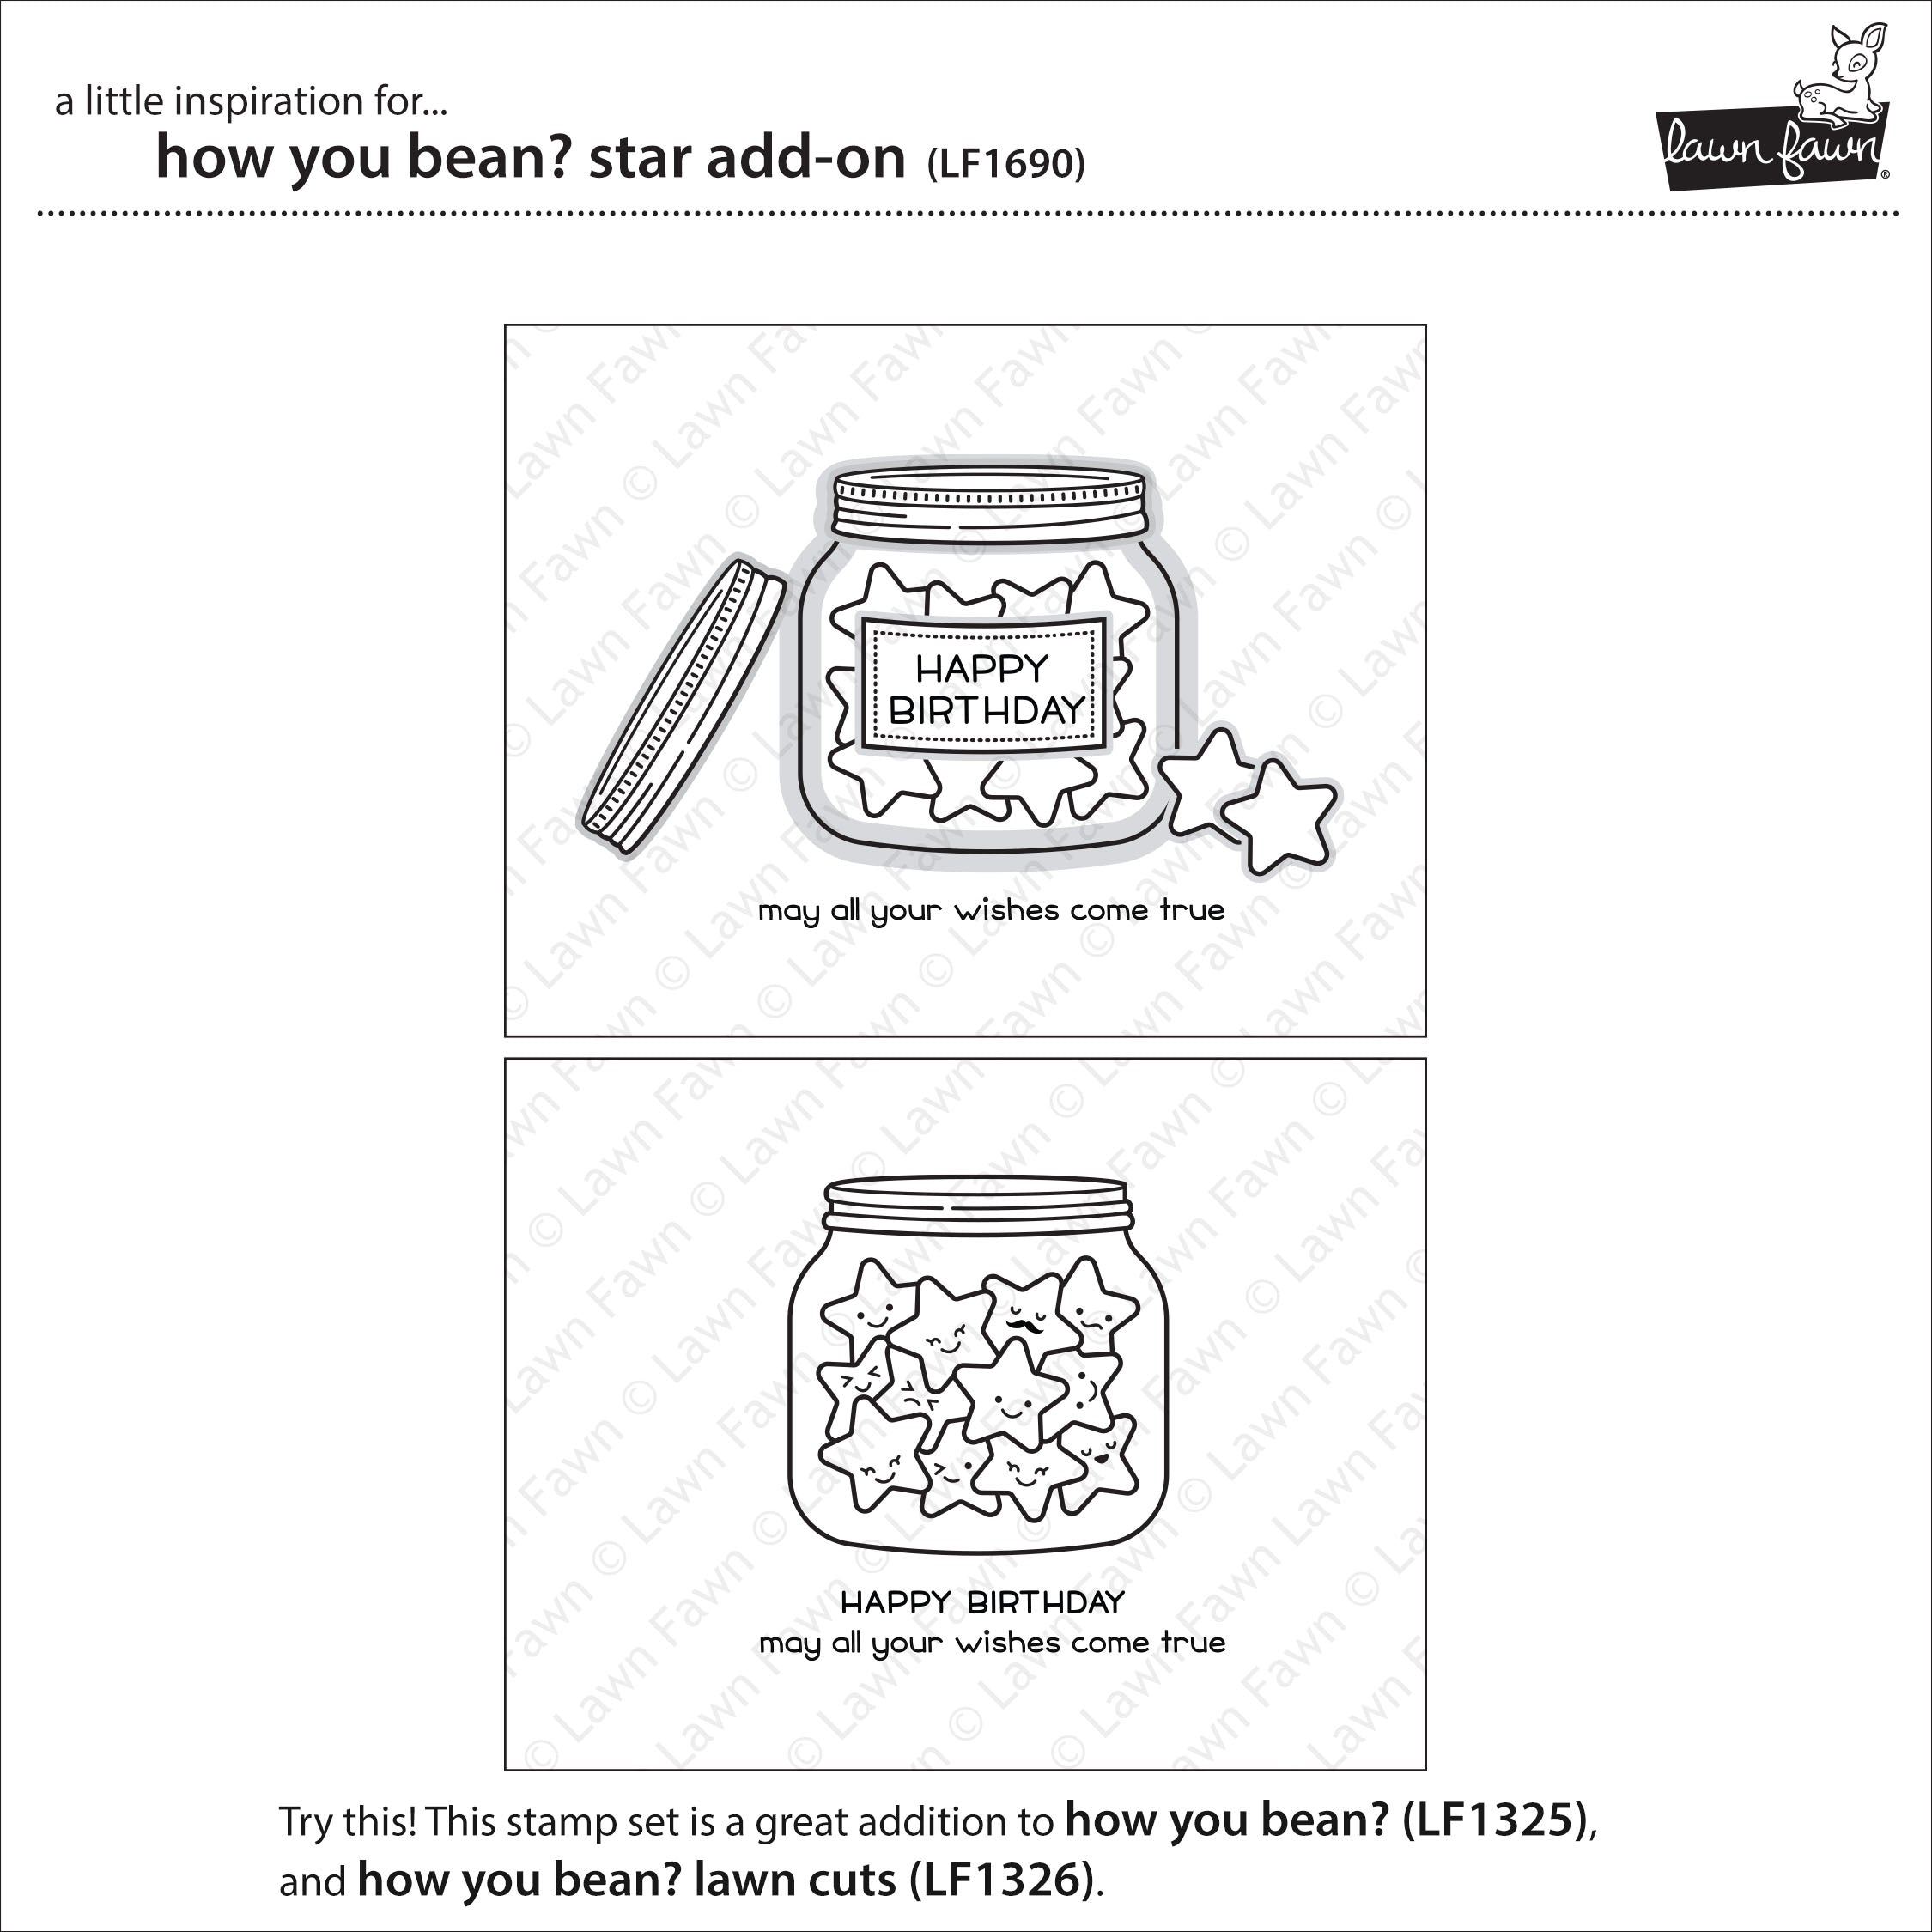 how you bean? star add-on